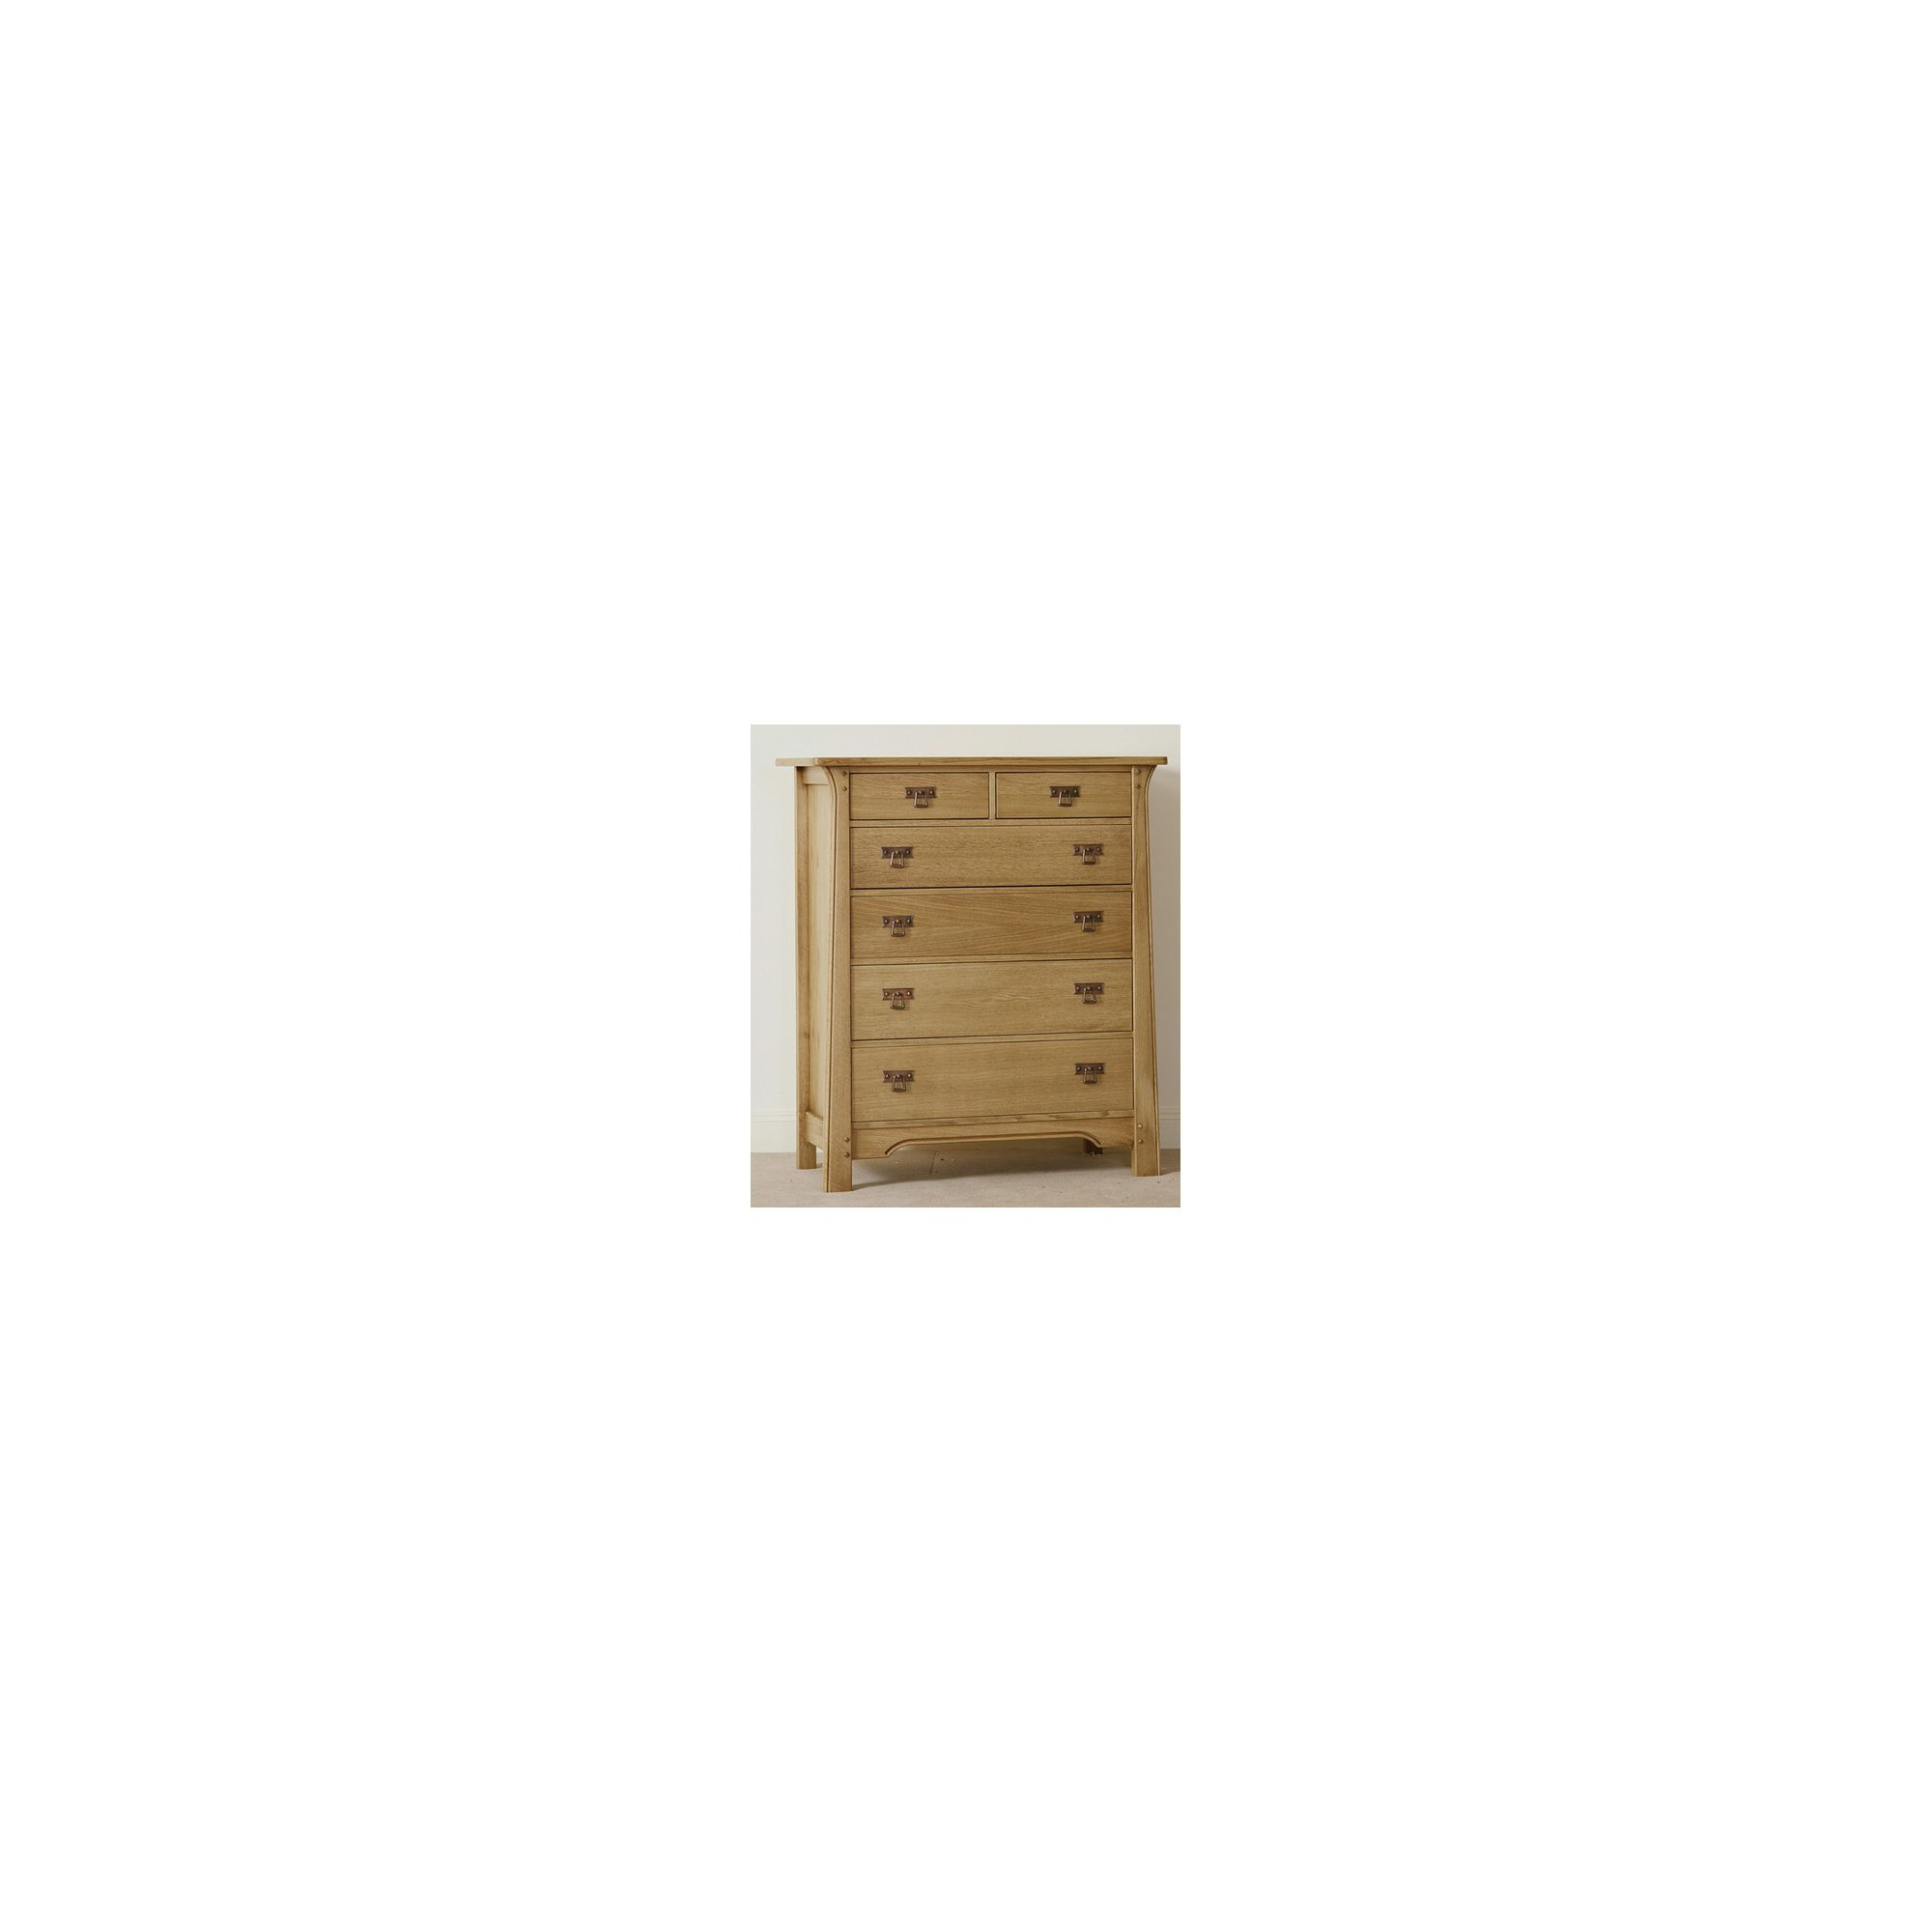 Sherry Designs Legacy Bedroom 6 Drawer Tall Chest - Light Honey at Tesco Direct